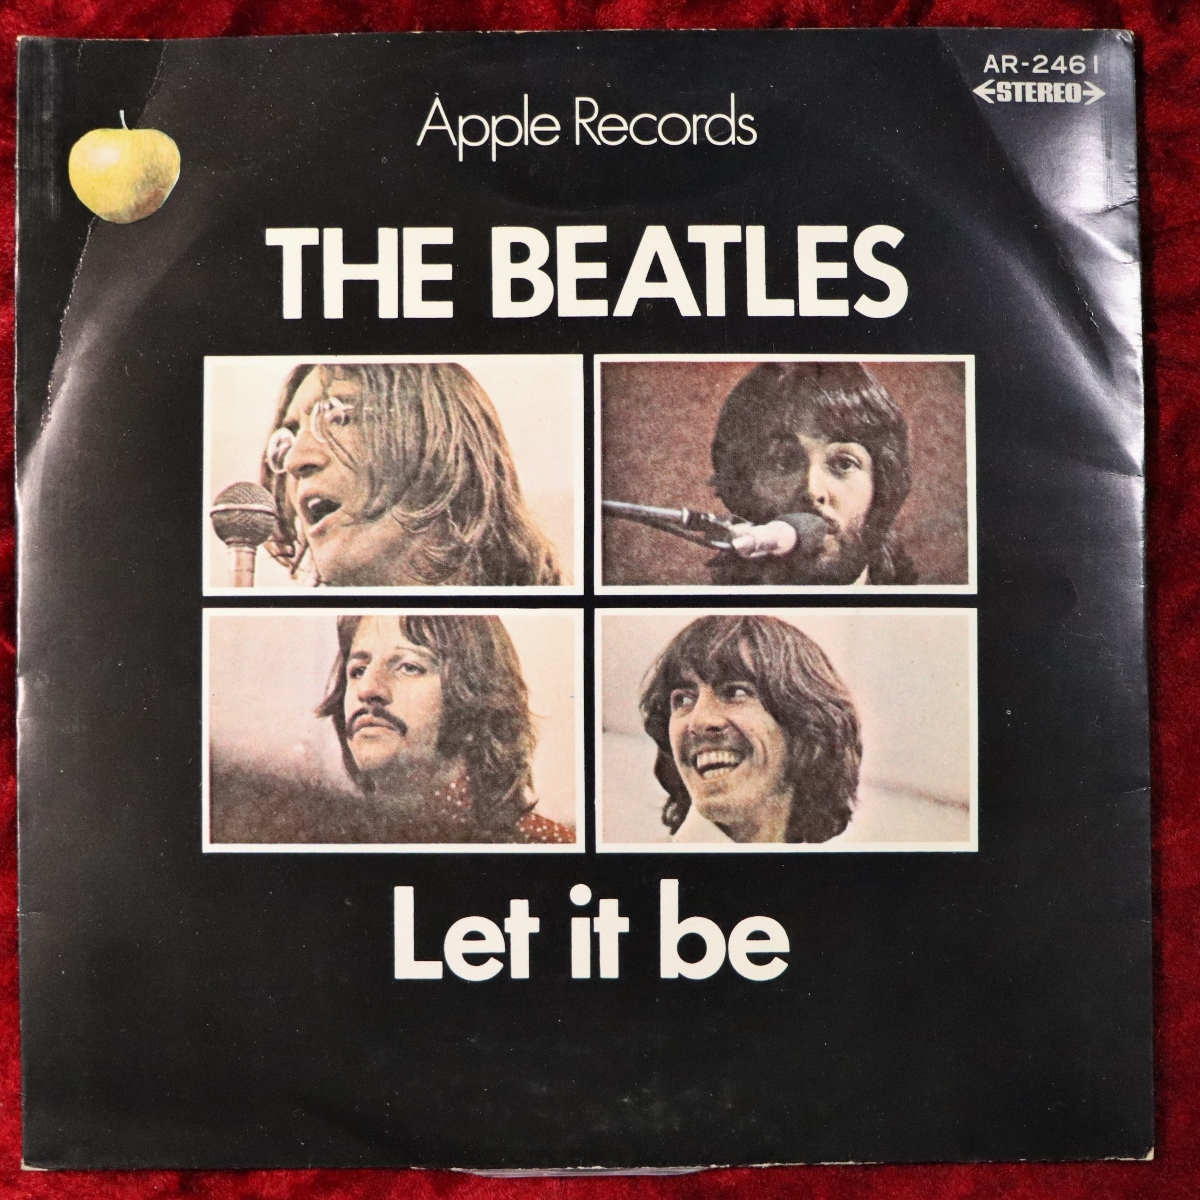 The Beatles/ビートルズ LET IT BE / YOU KNOW MY NAME (Look up the number) 東芝/Apple 黒盤 21C29003